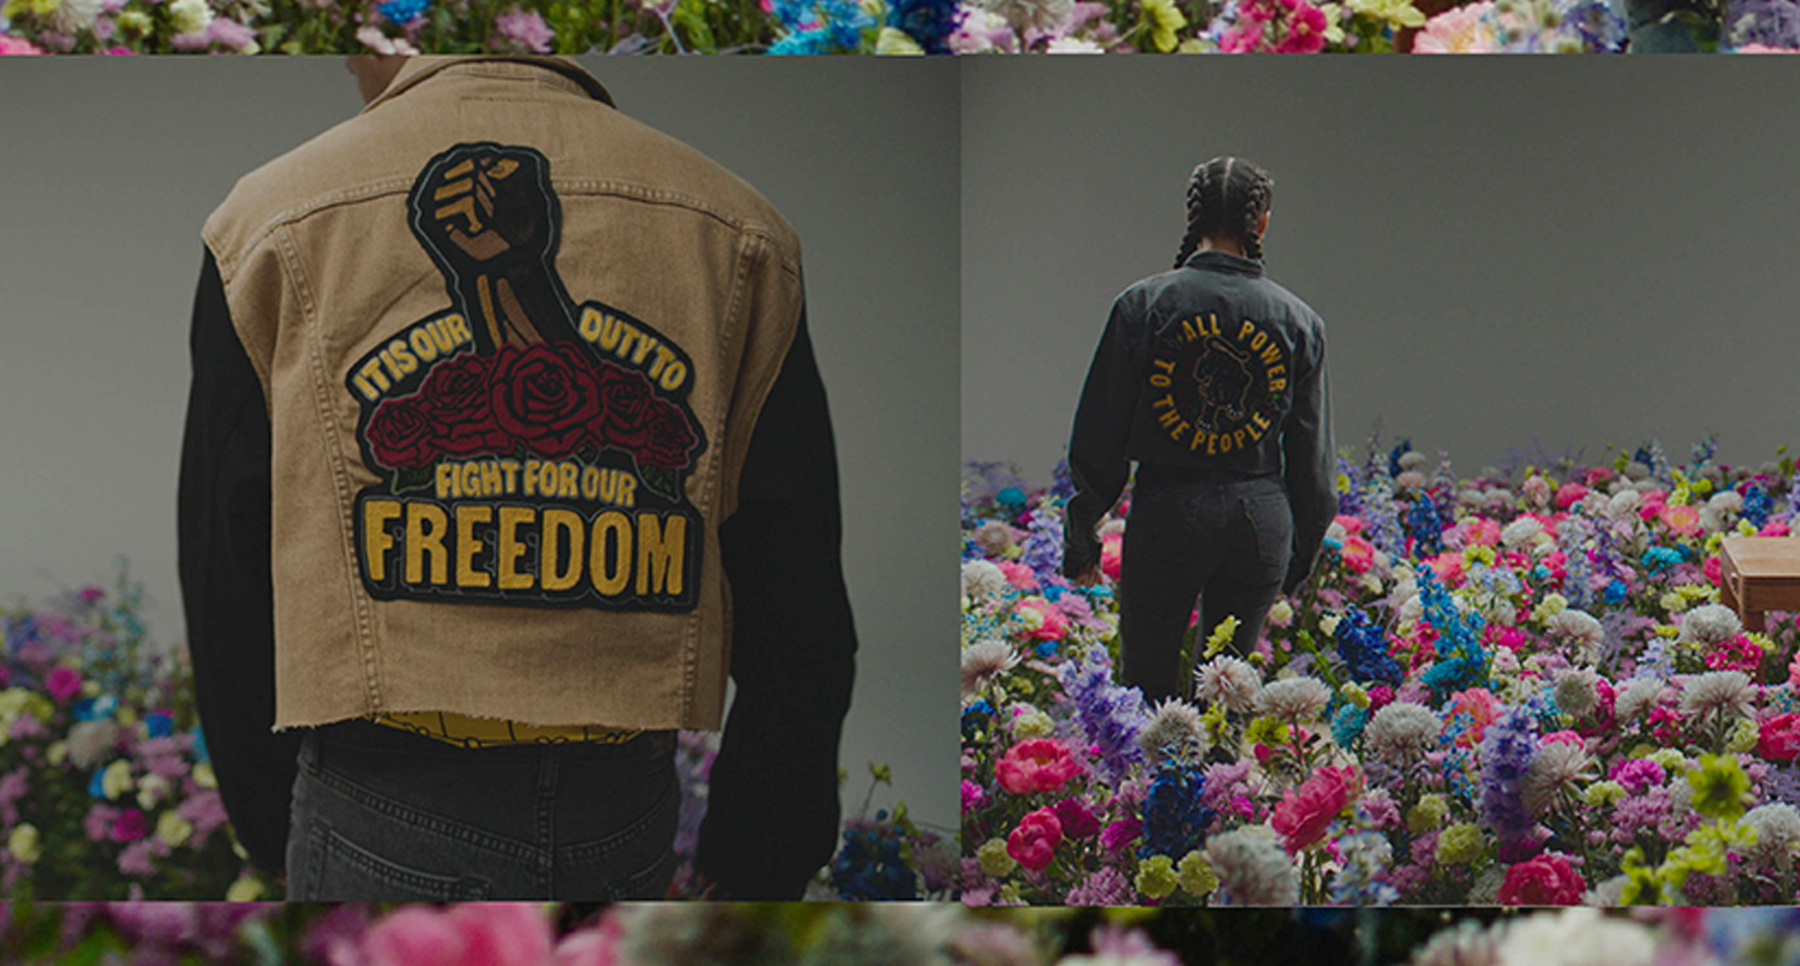 Brand Levi's Beauty of Becoming marketing campaign, with FrescoSteez clothing supporting Black Lives Matter